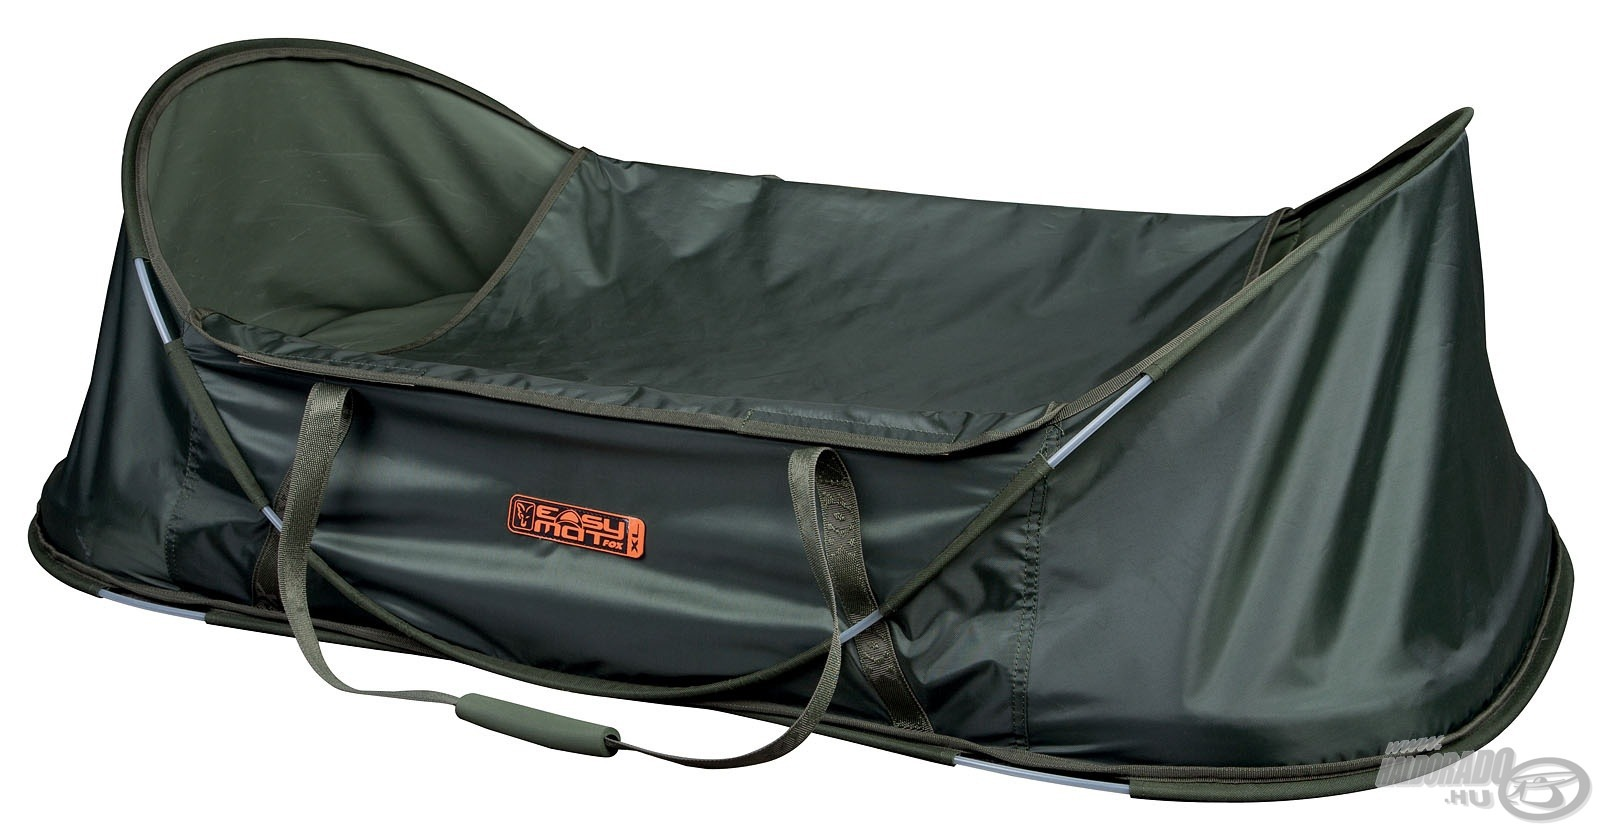 FOX Easy Mat XL pontymatrac 37990Ft